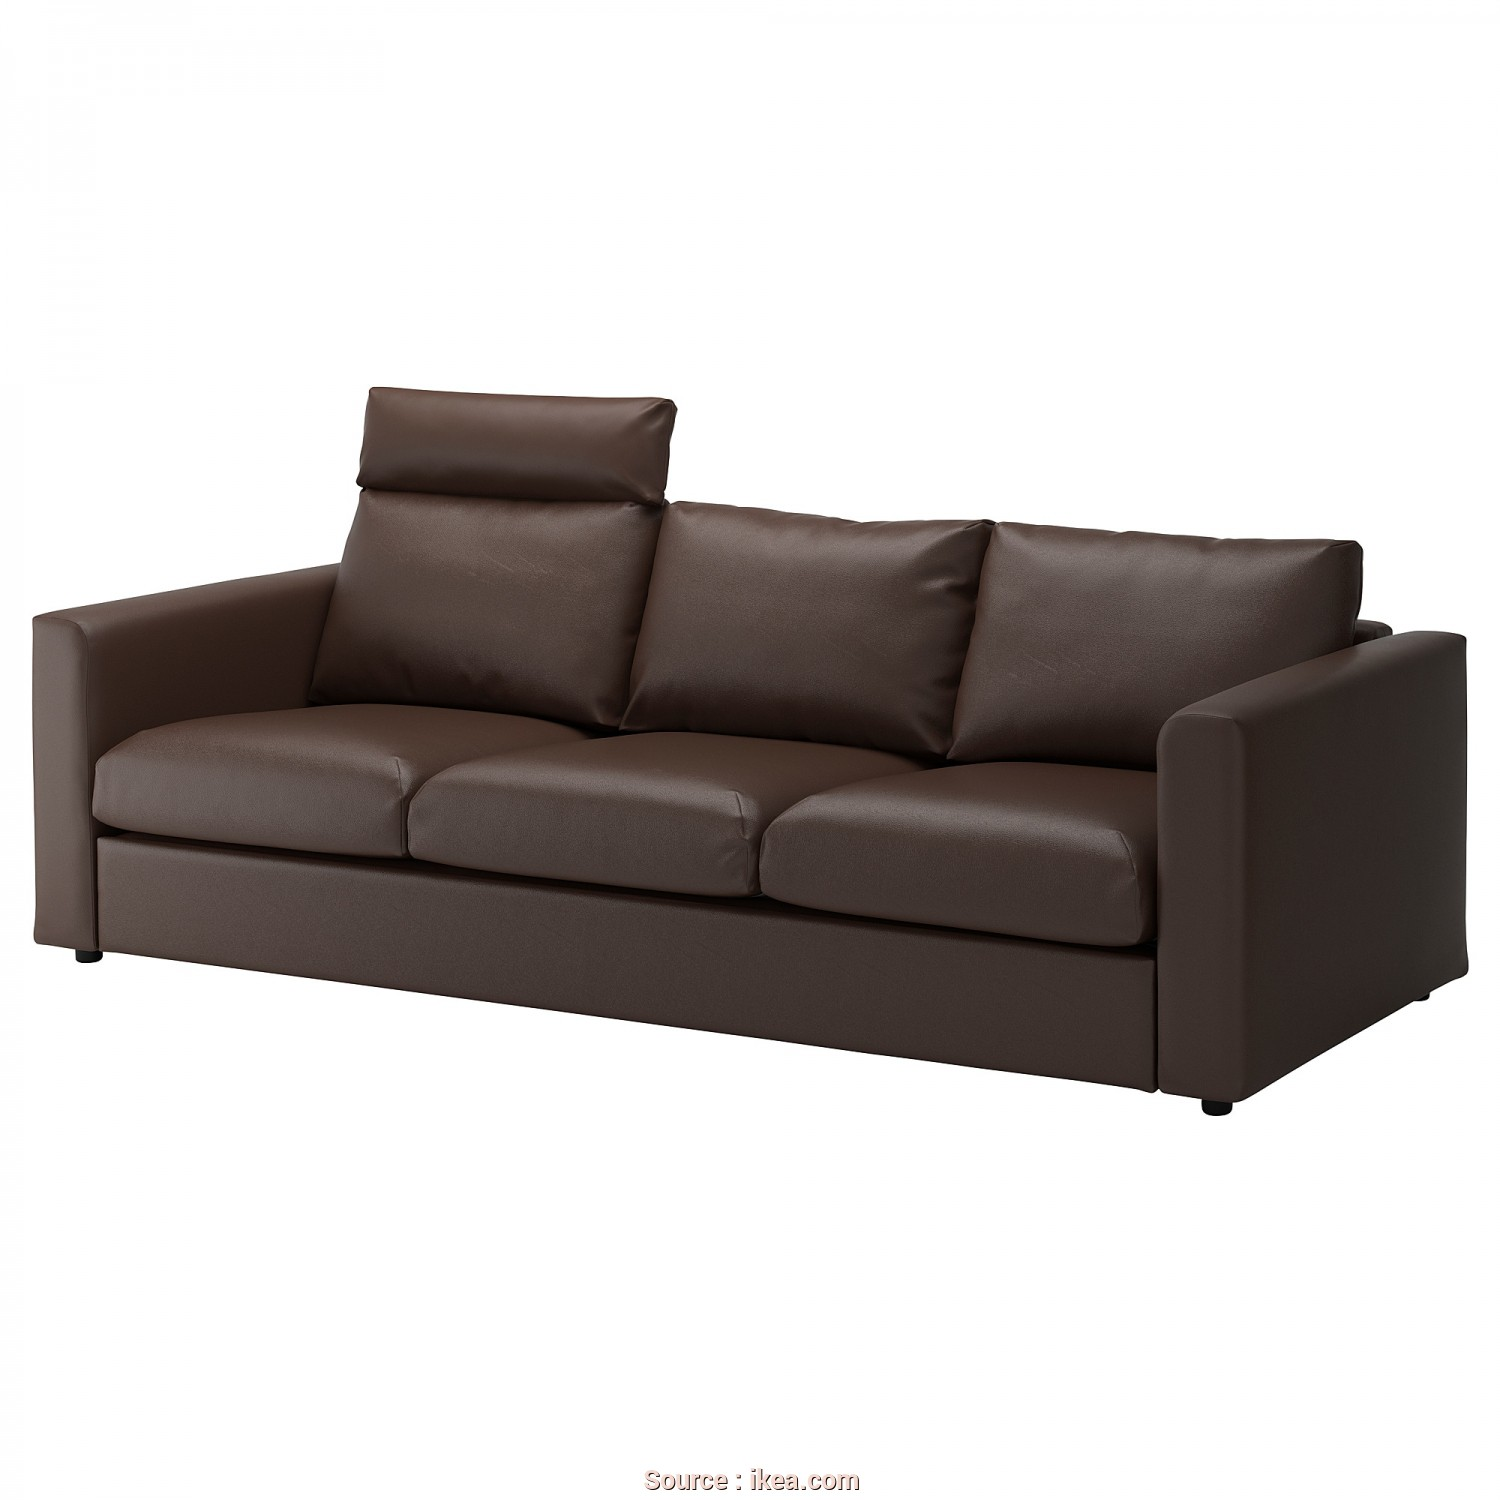 Ikea Klippan Sofa Leather, Stupefacente IKEA VIMLE 3-Seat Sofa, Cover Is Easy To Keep Clean As It Can